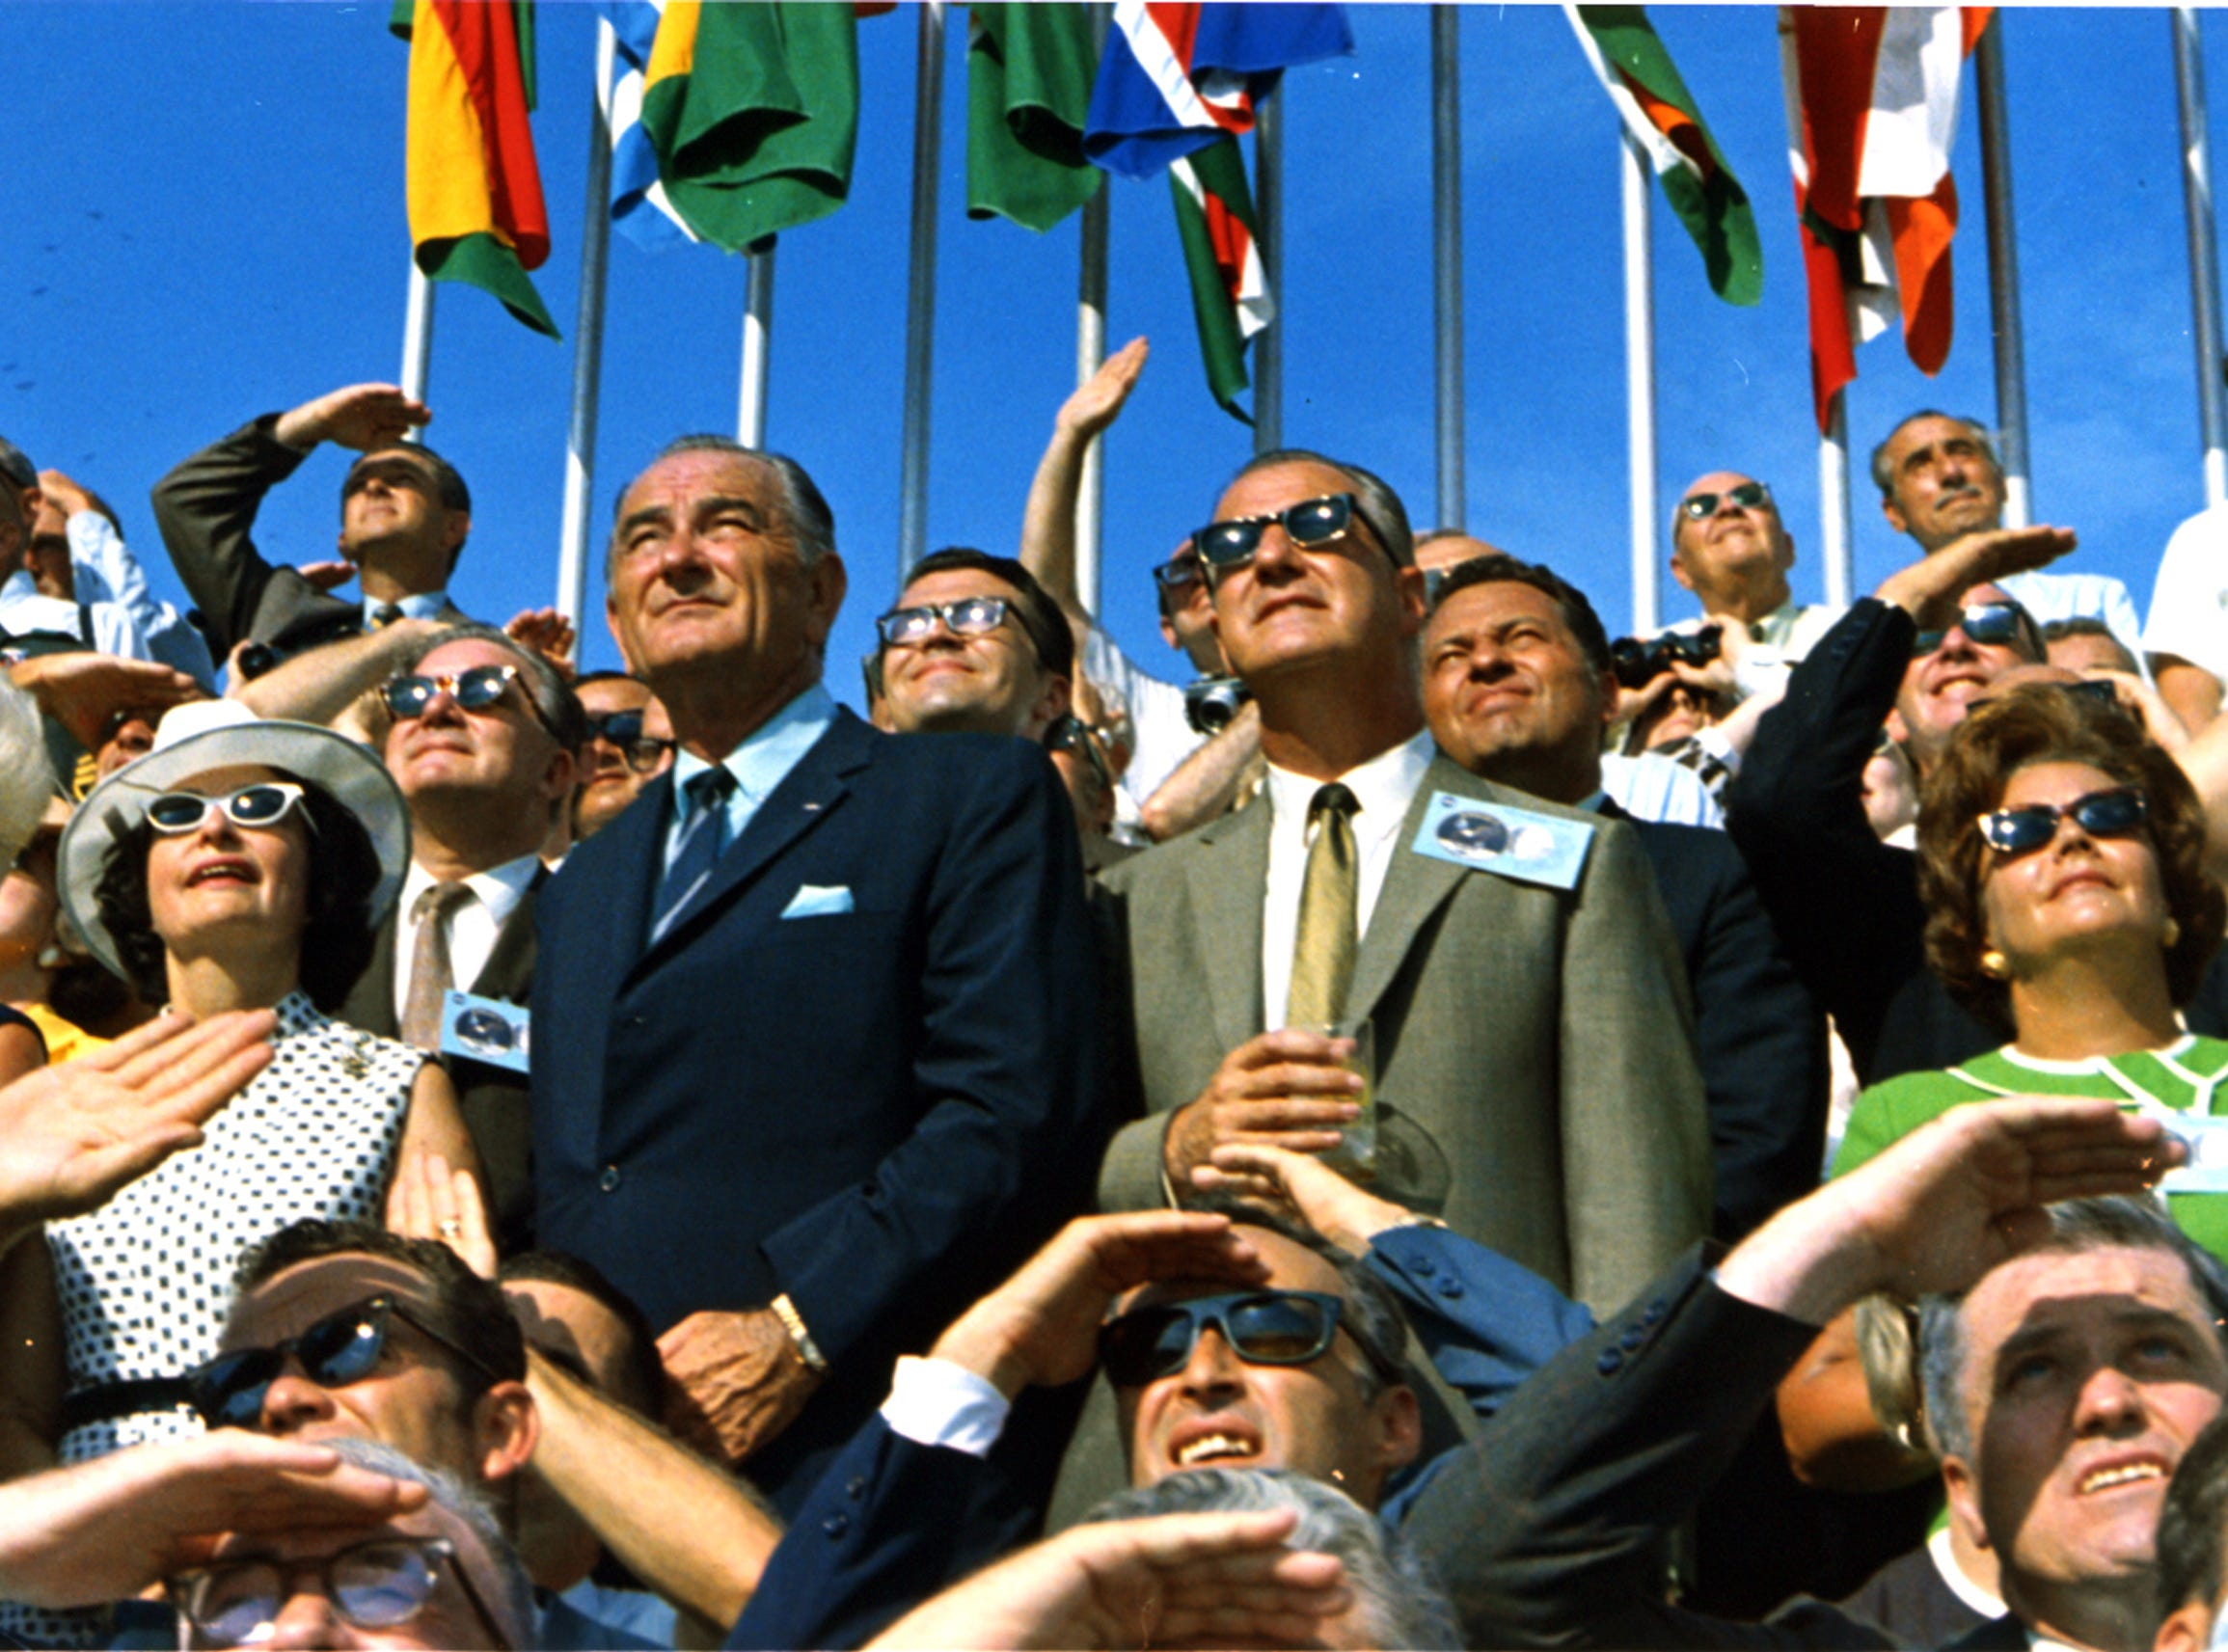 Former President Lyndon B. Johnson and then-current Vice President Spiro Agnew are among the spectators at the launch of Apollo 11, which lifted off from Pad 39A at Kennedy Space Center at 9:32 am EDT on July 16, 1969. The crew, the first of the Apollo missions to land on the moon, safely returned to Earth on 37 years ago this week on July 24, 1969